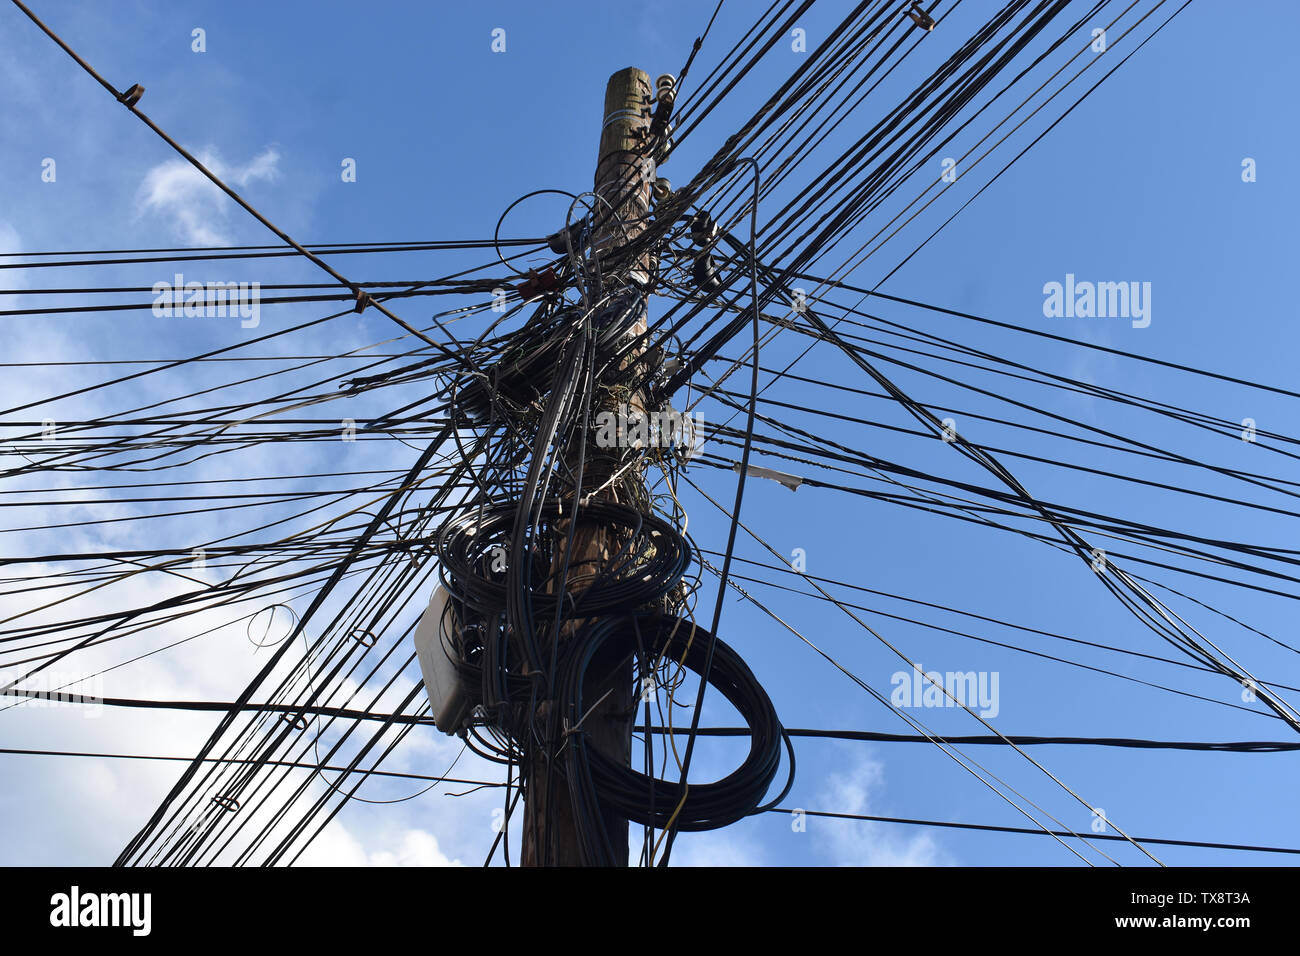 Messy Electrical Cables On Pole Stock Photos & Messy Electrical